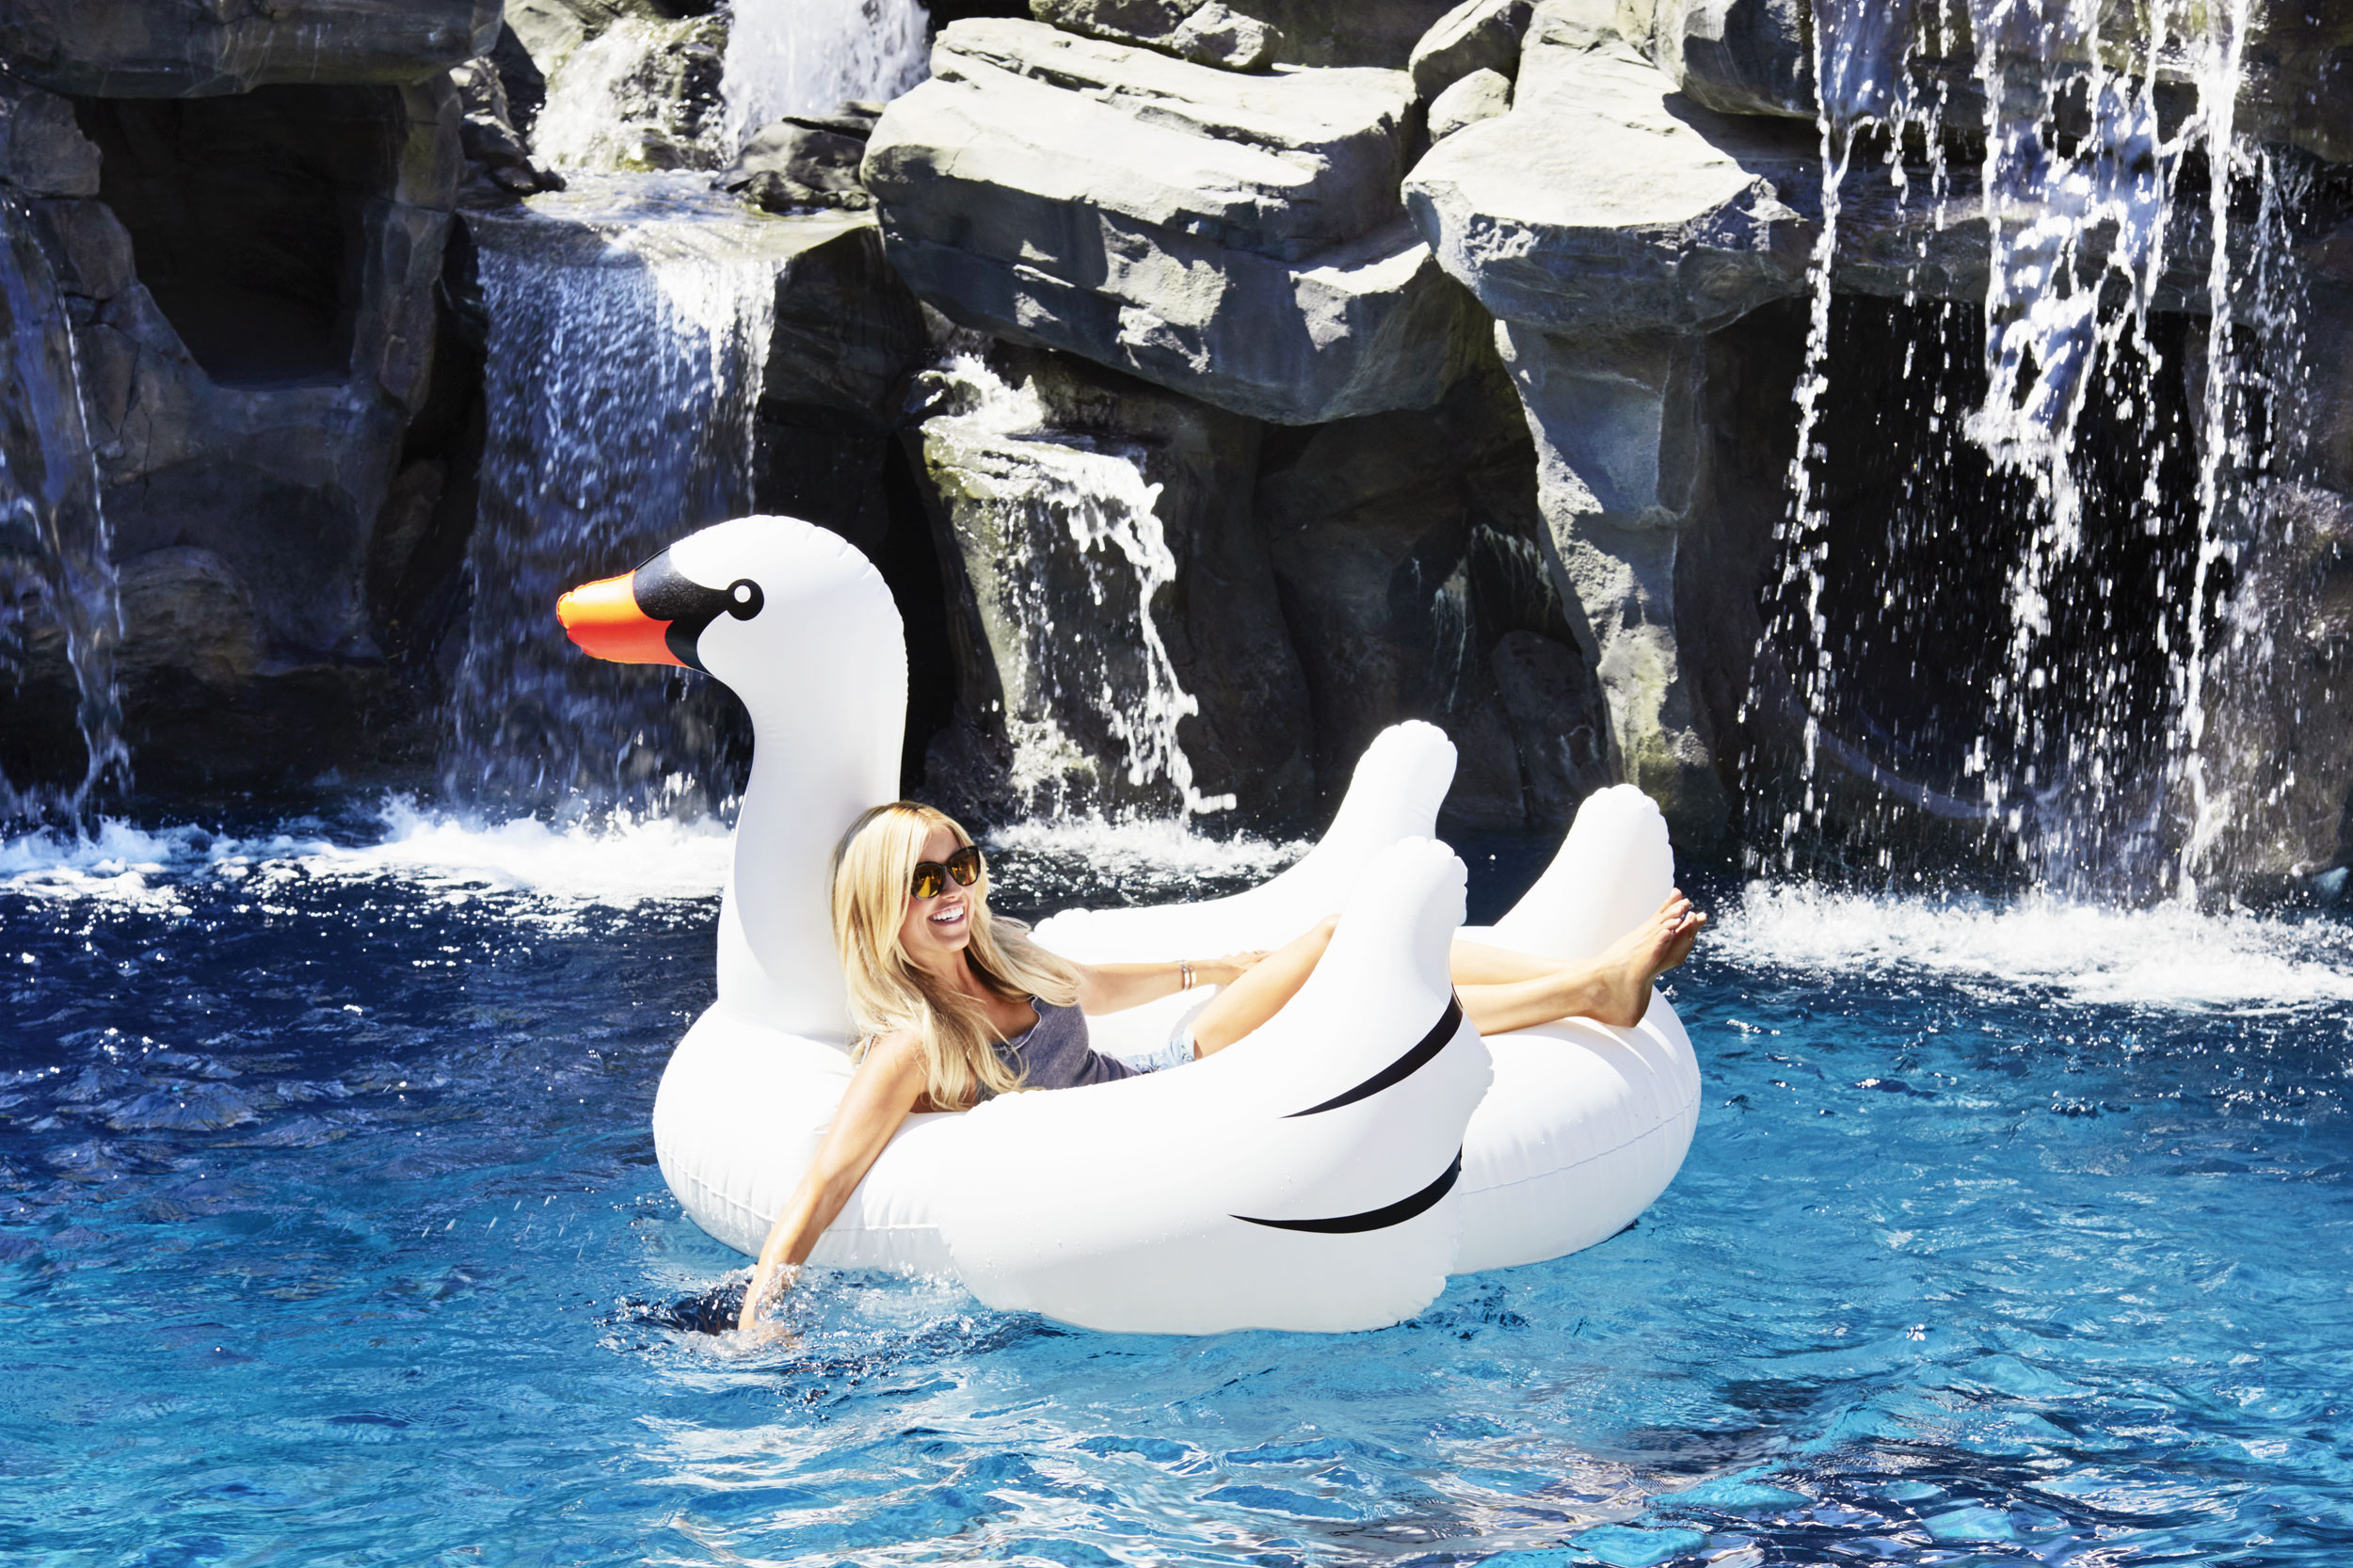 HGTV Christina El Moussa on a swan pool float. Kim Genevieve Los Angeles Portrait Photographer